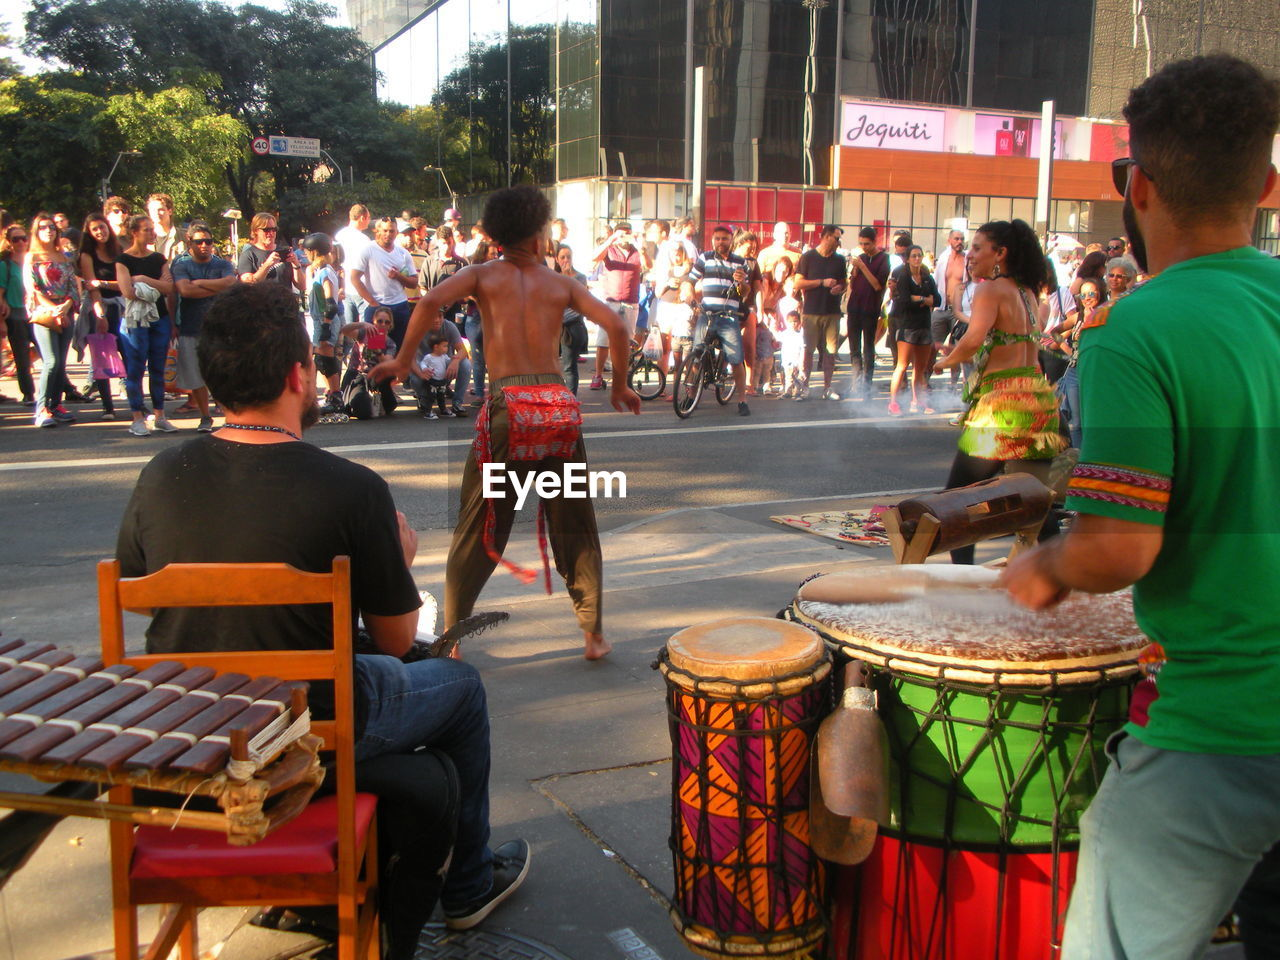 group of people, crowd, real people, large group of people, men, street, city, musical instrument, music, arts culture and entertainment, musical equipment, architecture, artist, musician, drum - percussion instrument, leisure activity, women, celebration, adult, festival